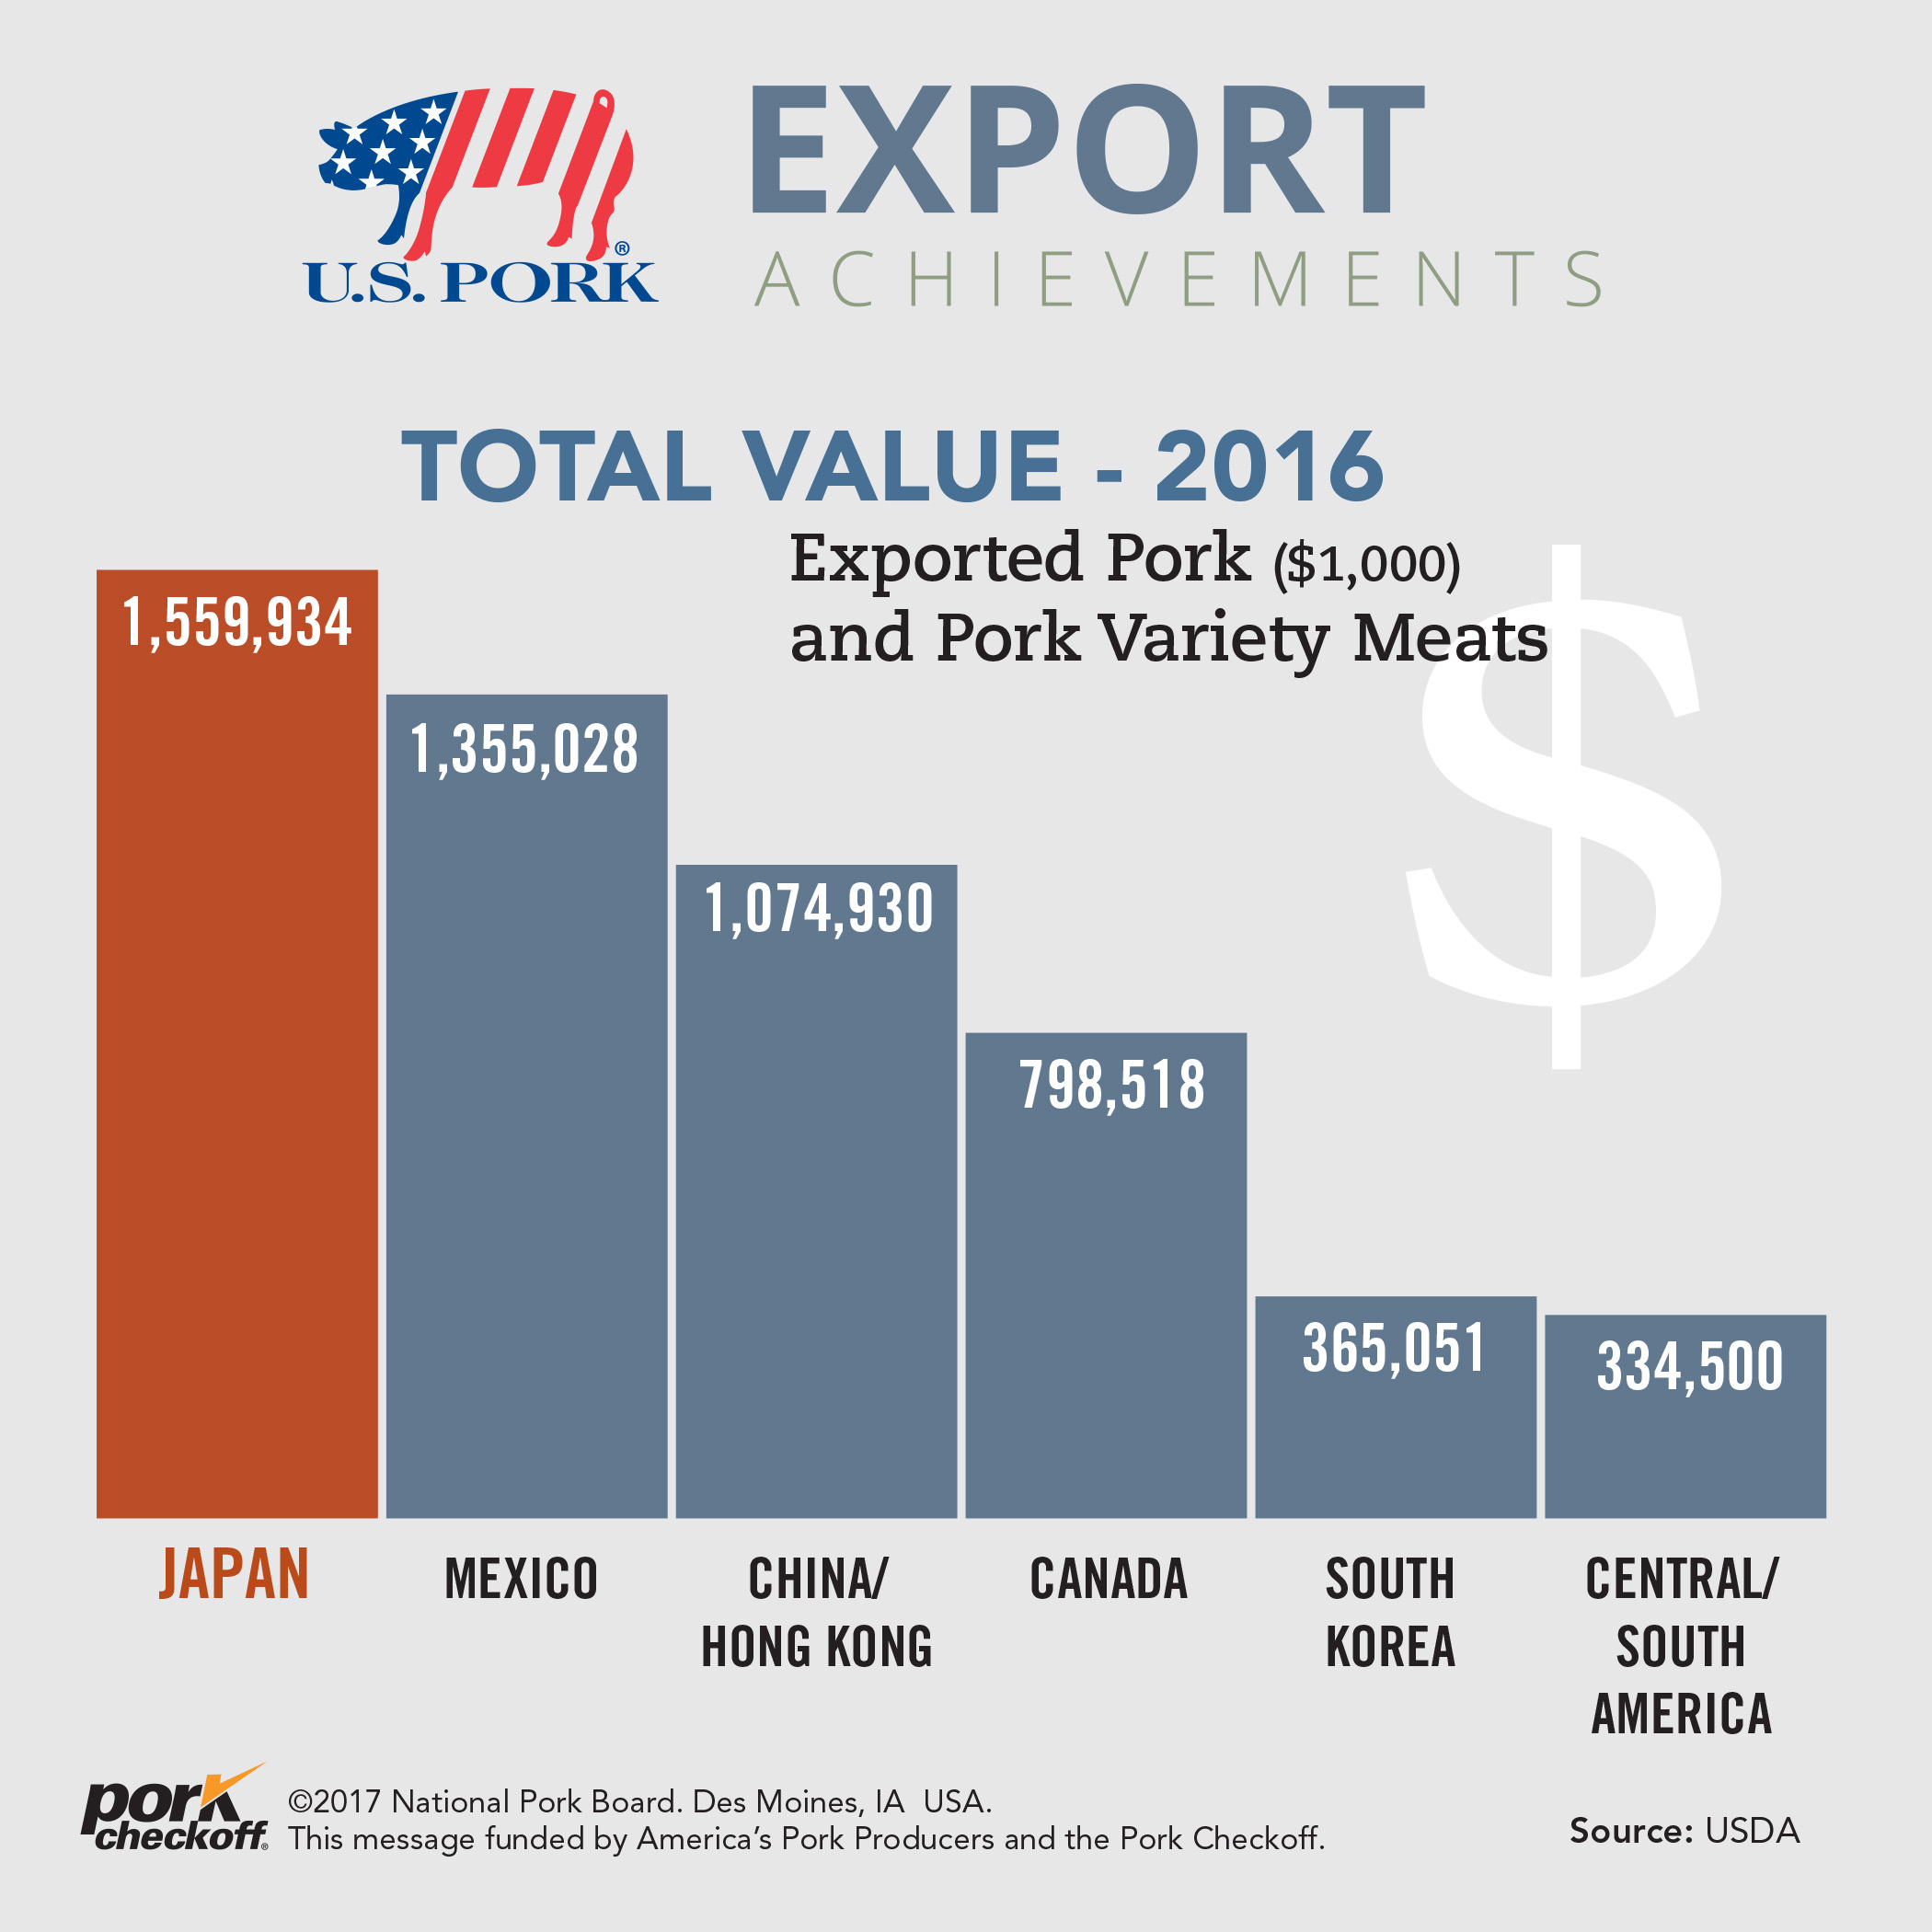 total value exported pork and pork variety meats 2016